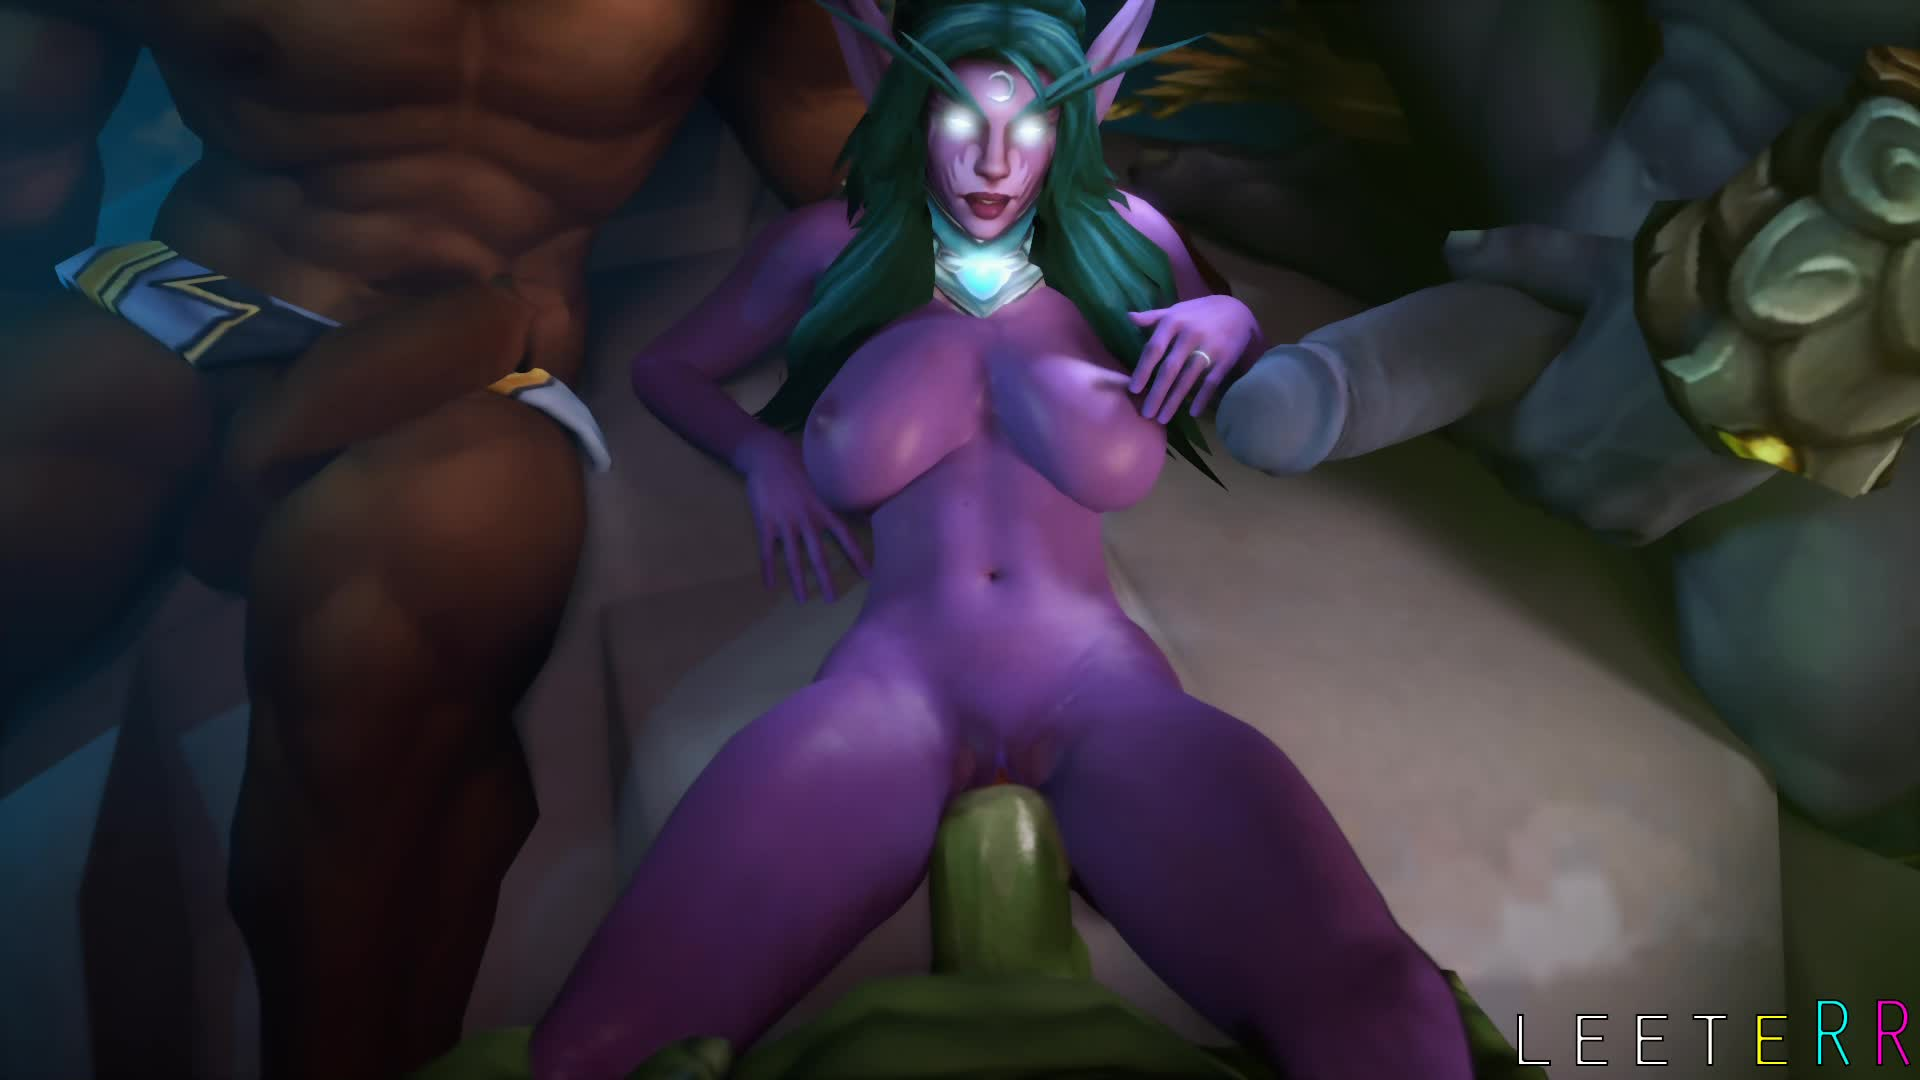 Tyrande whisperwind nude mod pornos photo